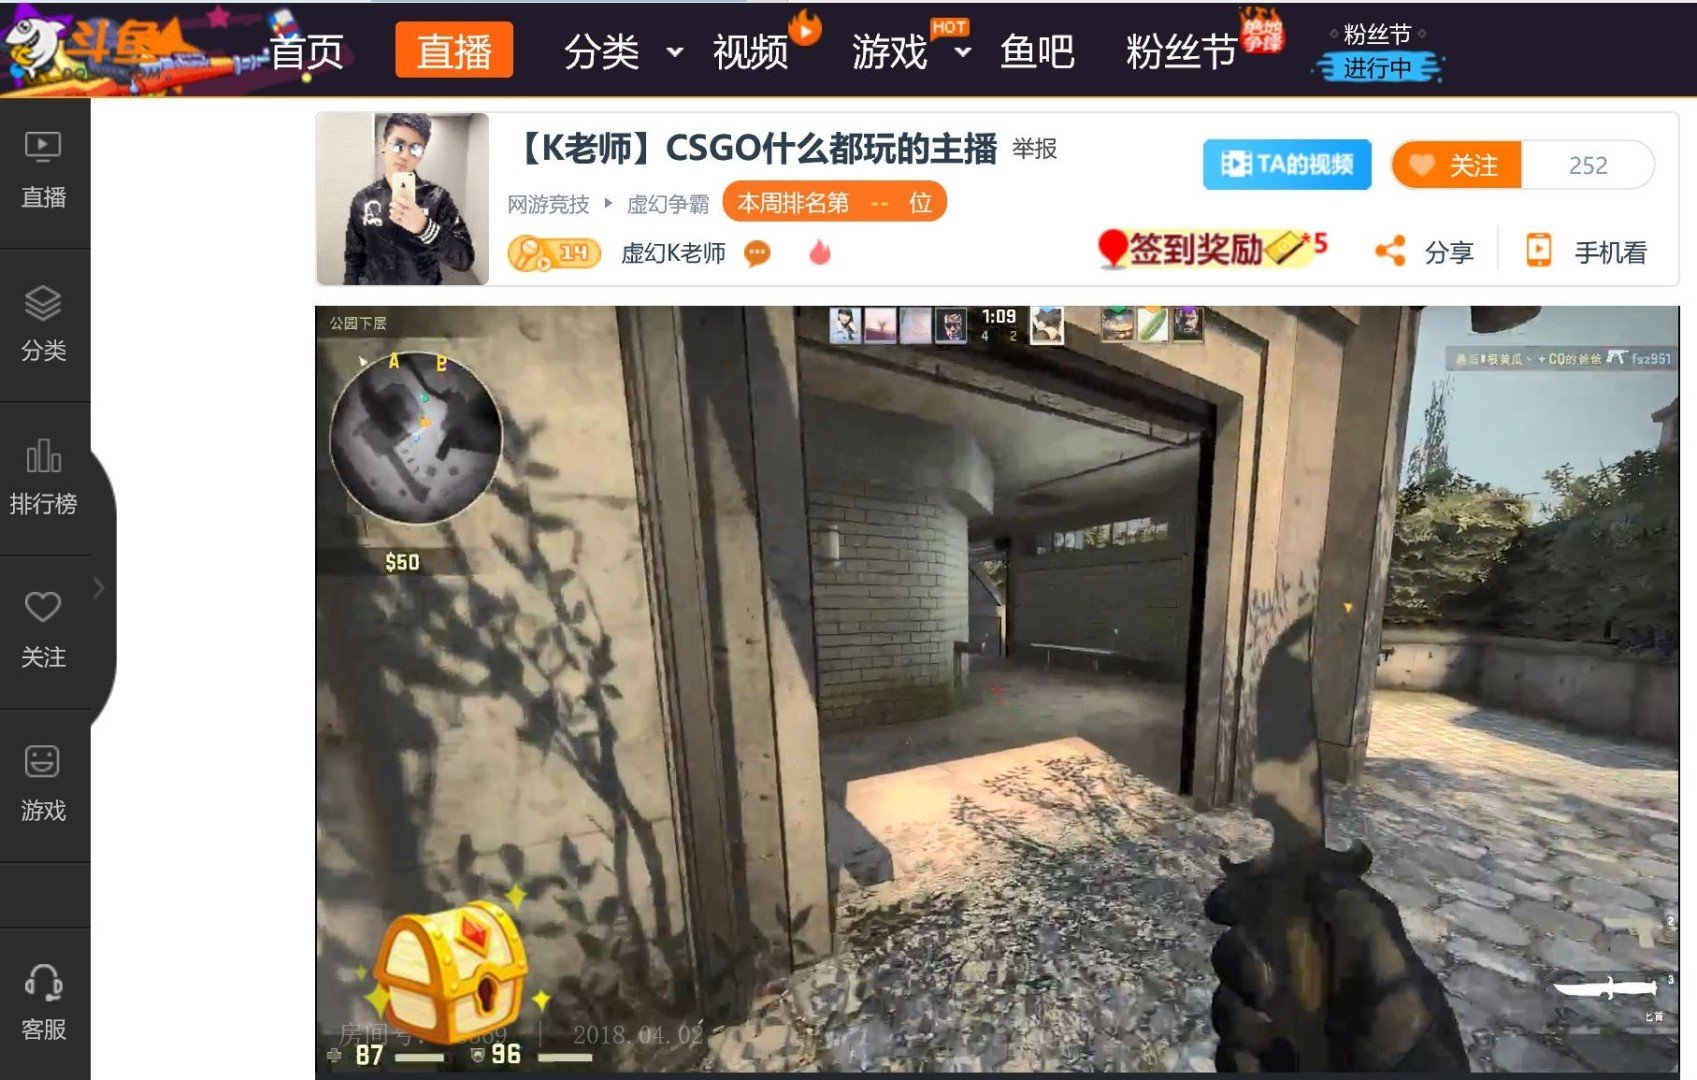 Tencent-backed live-streaming platform Douyu pulled from app stores